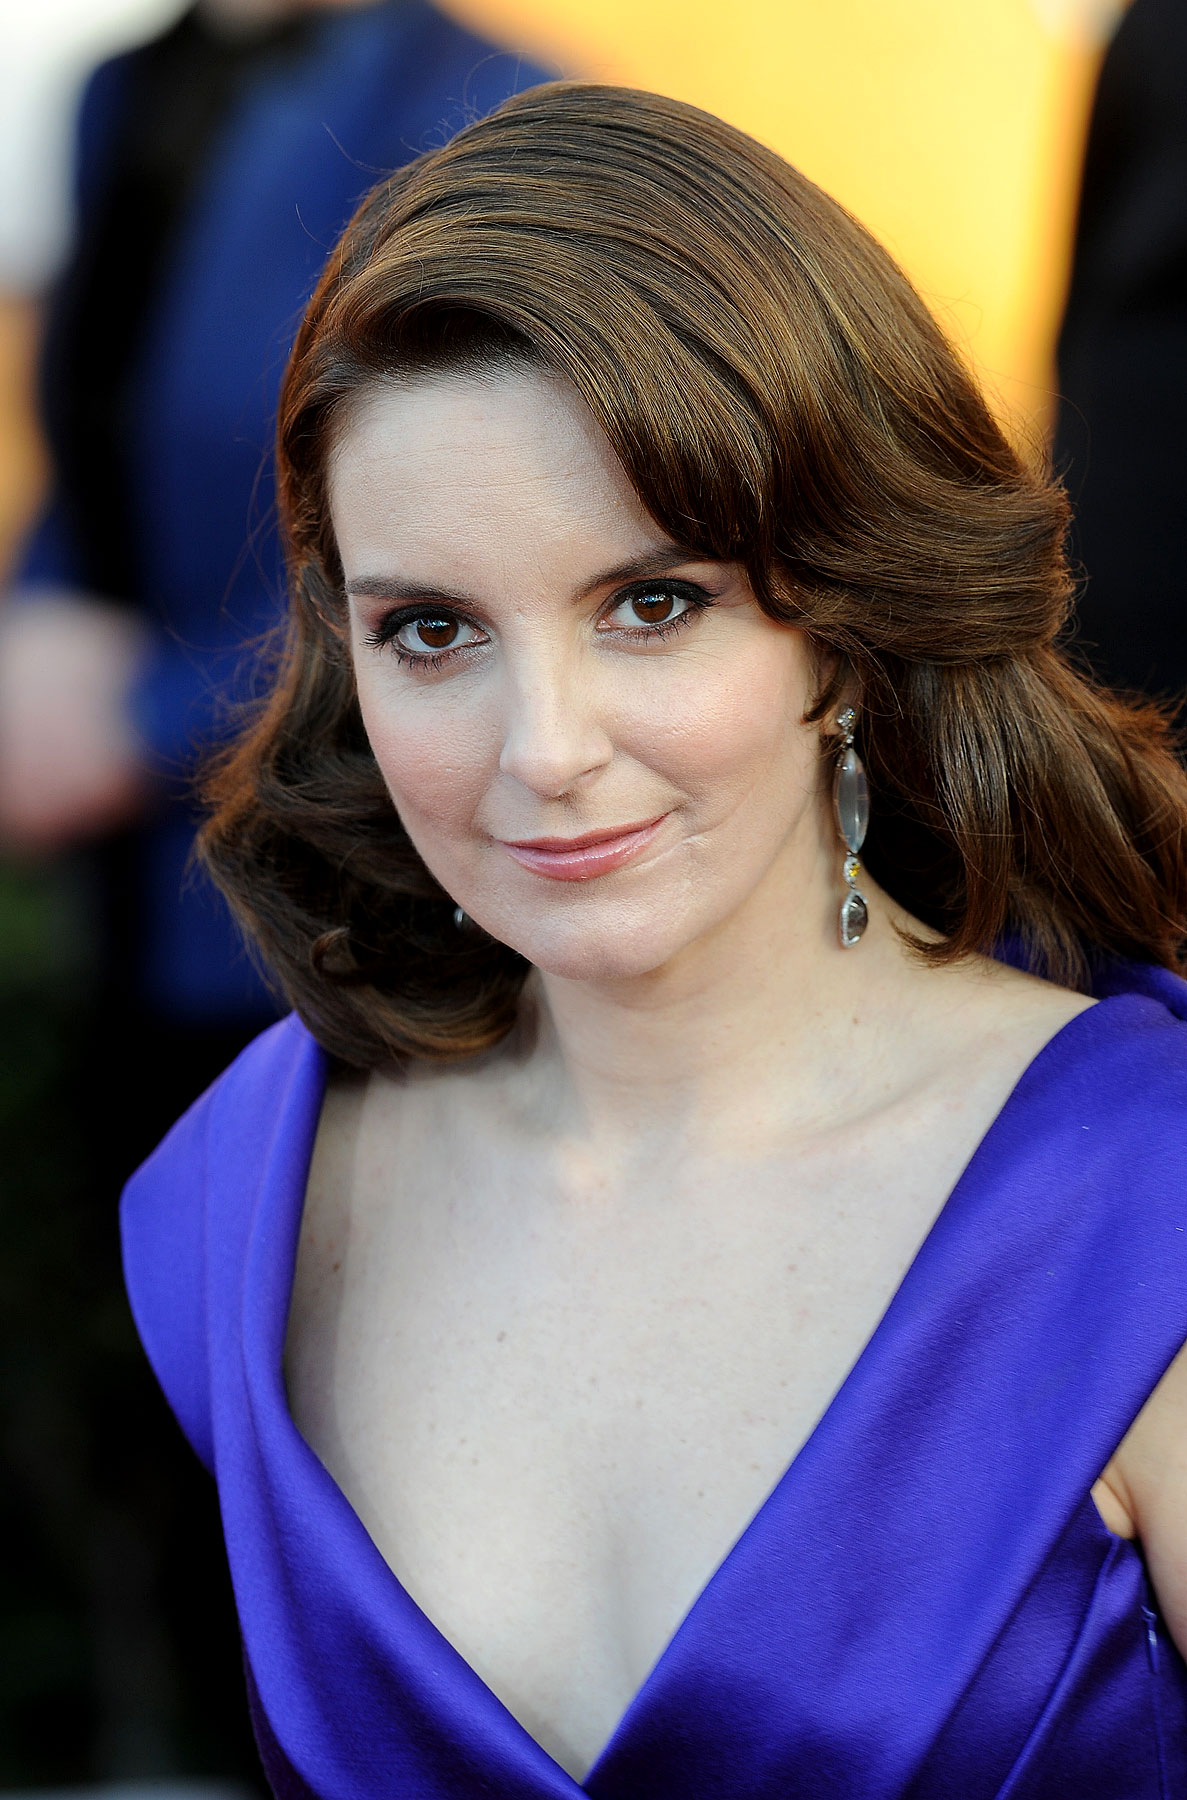 Tina fey photo gallery BOD celebrates seven year wedding anniversary with adorable